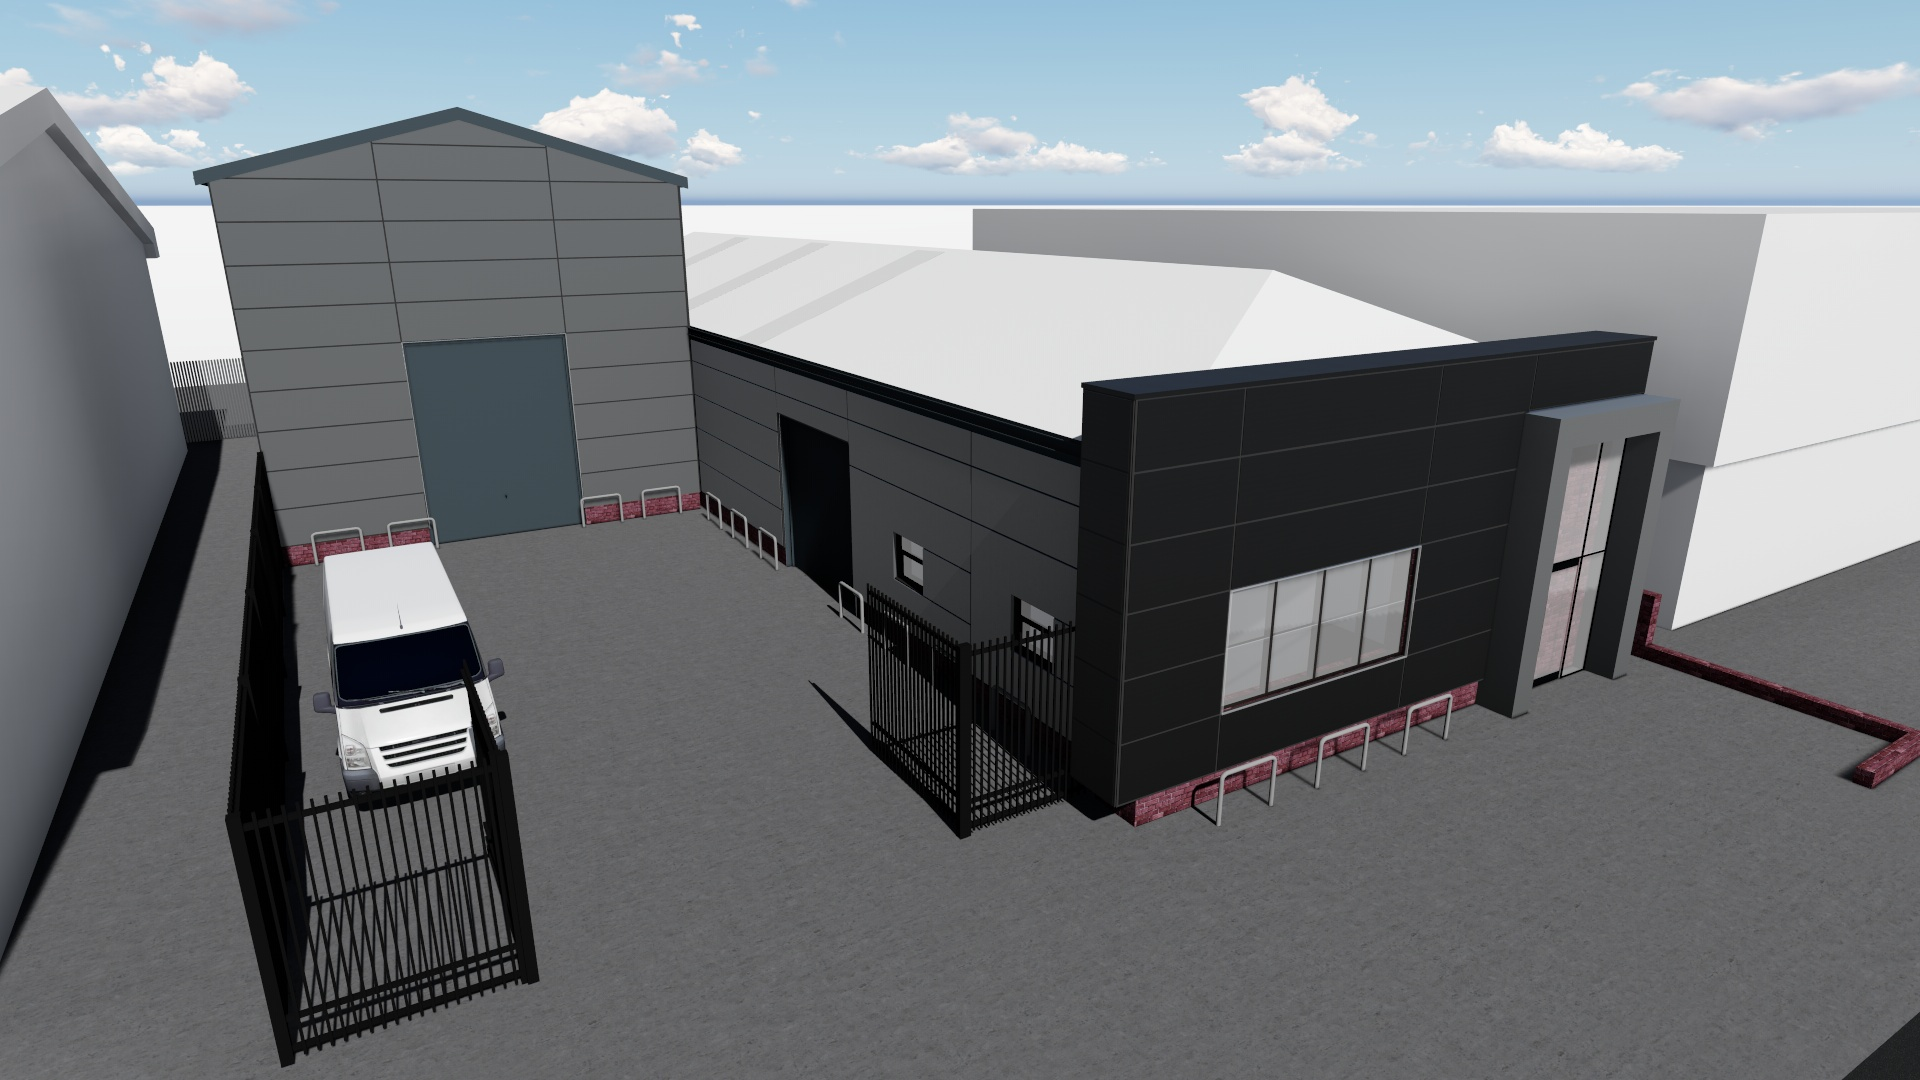 Proposed warehouse 2